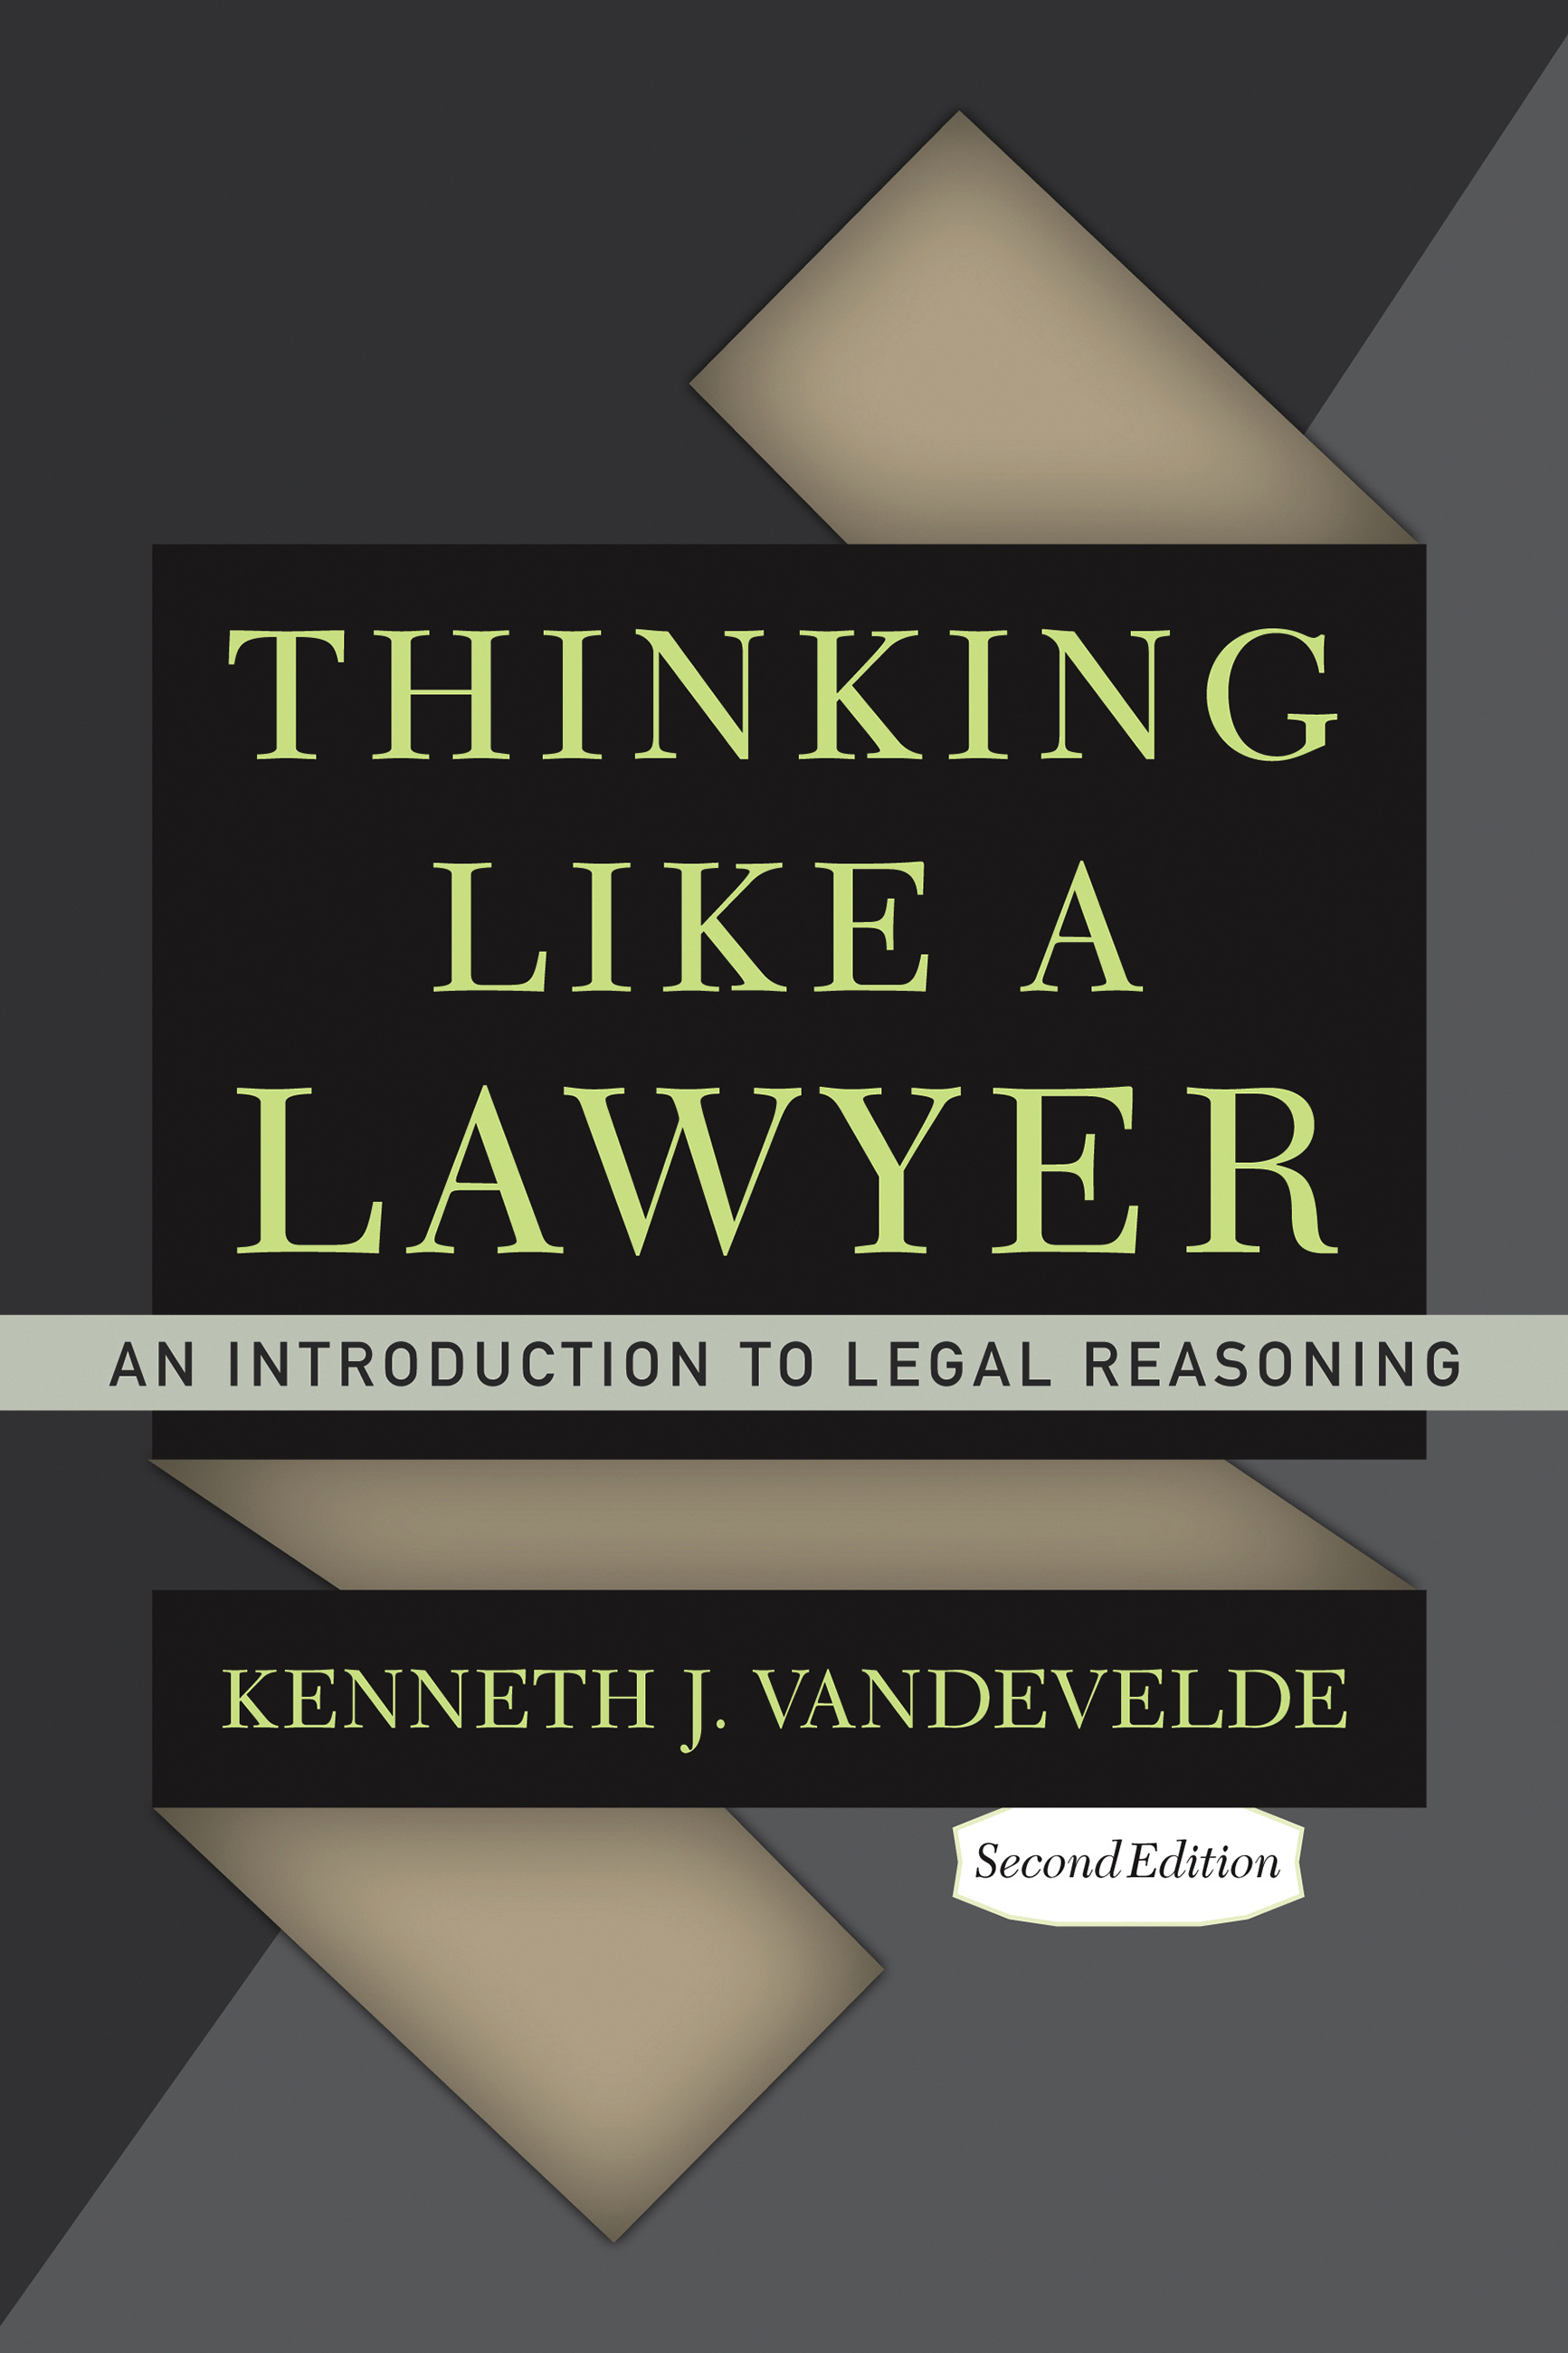 an analysis of legal reasoning in thinking like a lawyer a book by frederick schauer In his classic primer on legal reasoning, thinking like a lawyer: a new introduction to legal reasoning (thinking like a lawyer), 10 frederick schauer, thinking like a lawyer: a new introduction to legal reasoning (united states of america: harvard university press, 2009.